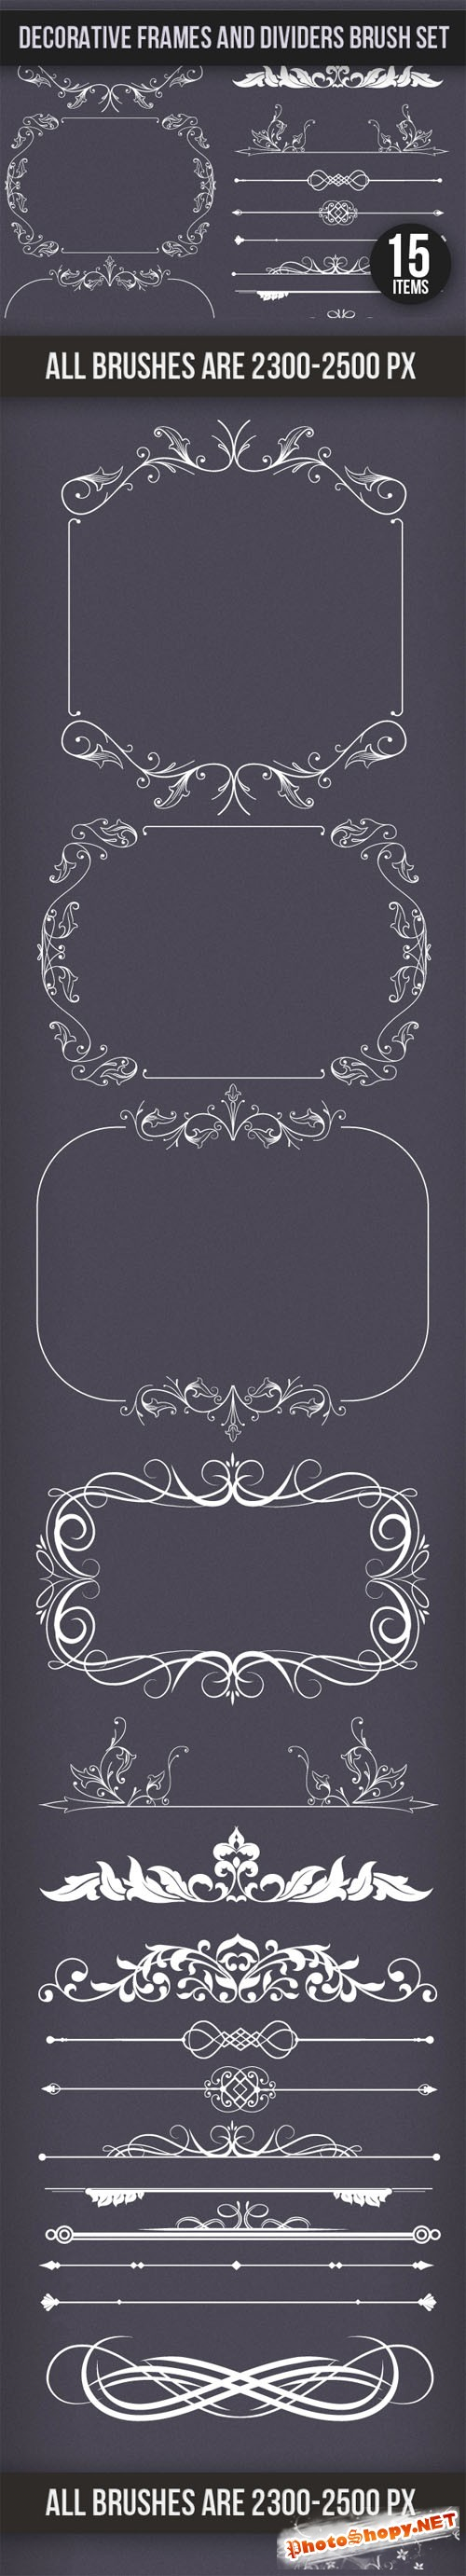 Designtnt - Decoration Frames and Dividers PS Brushes